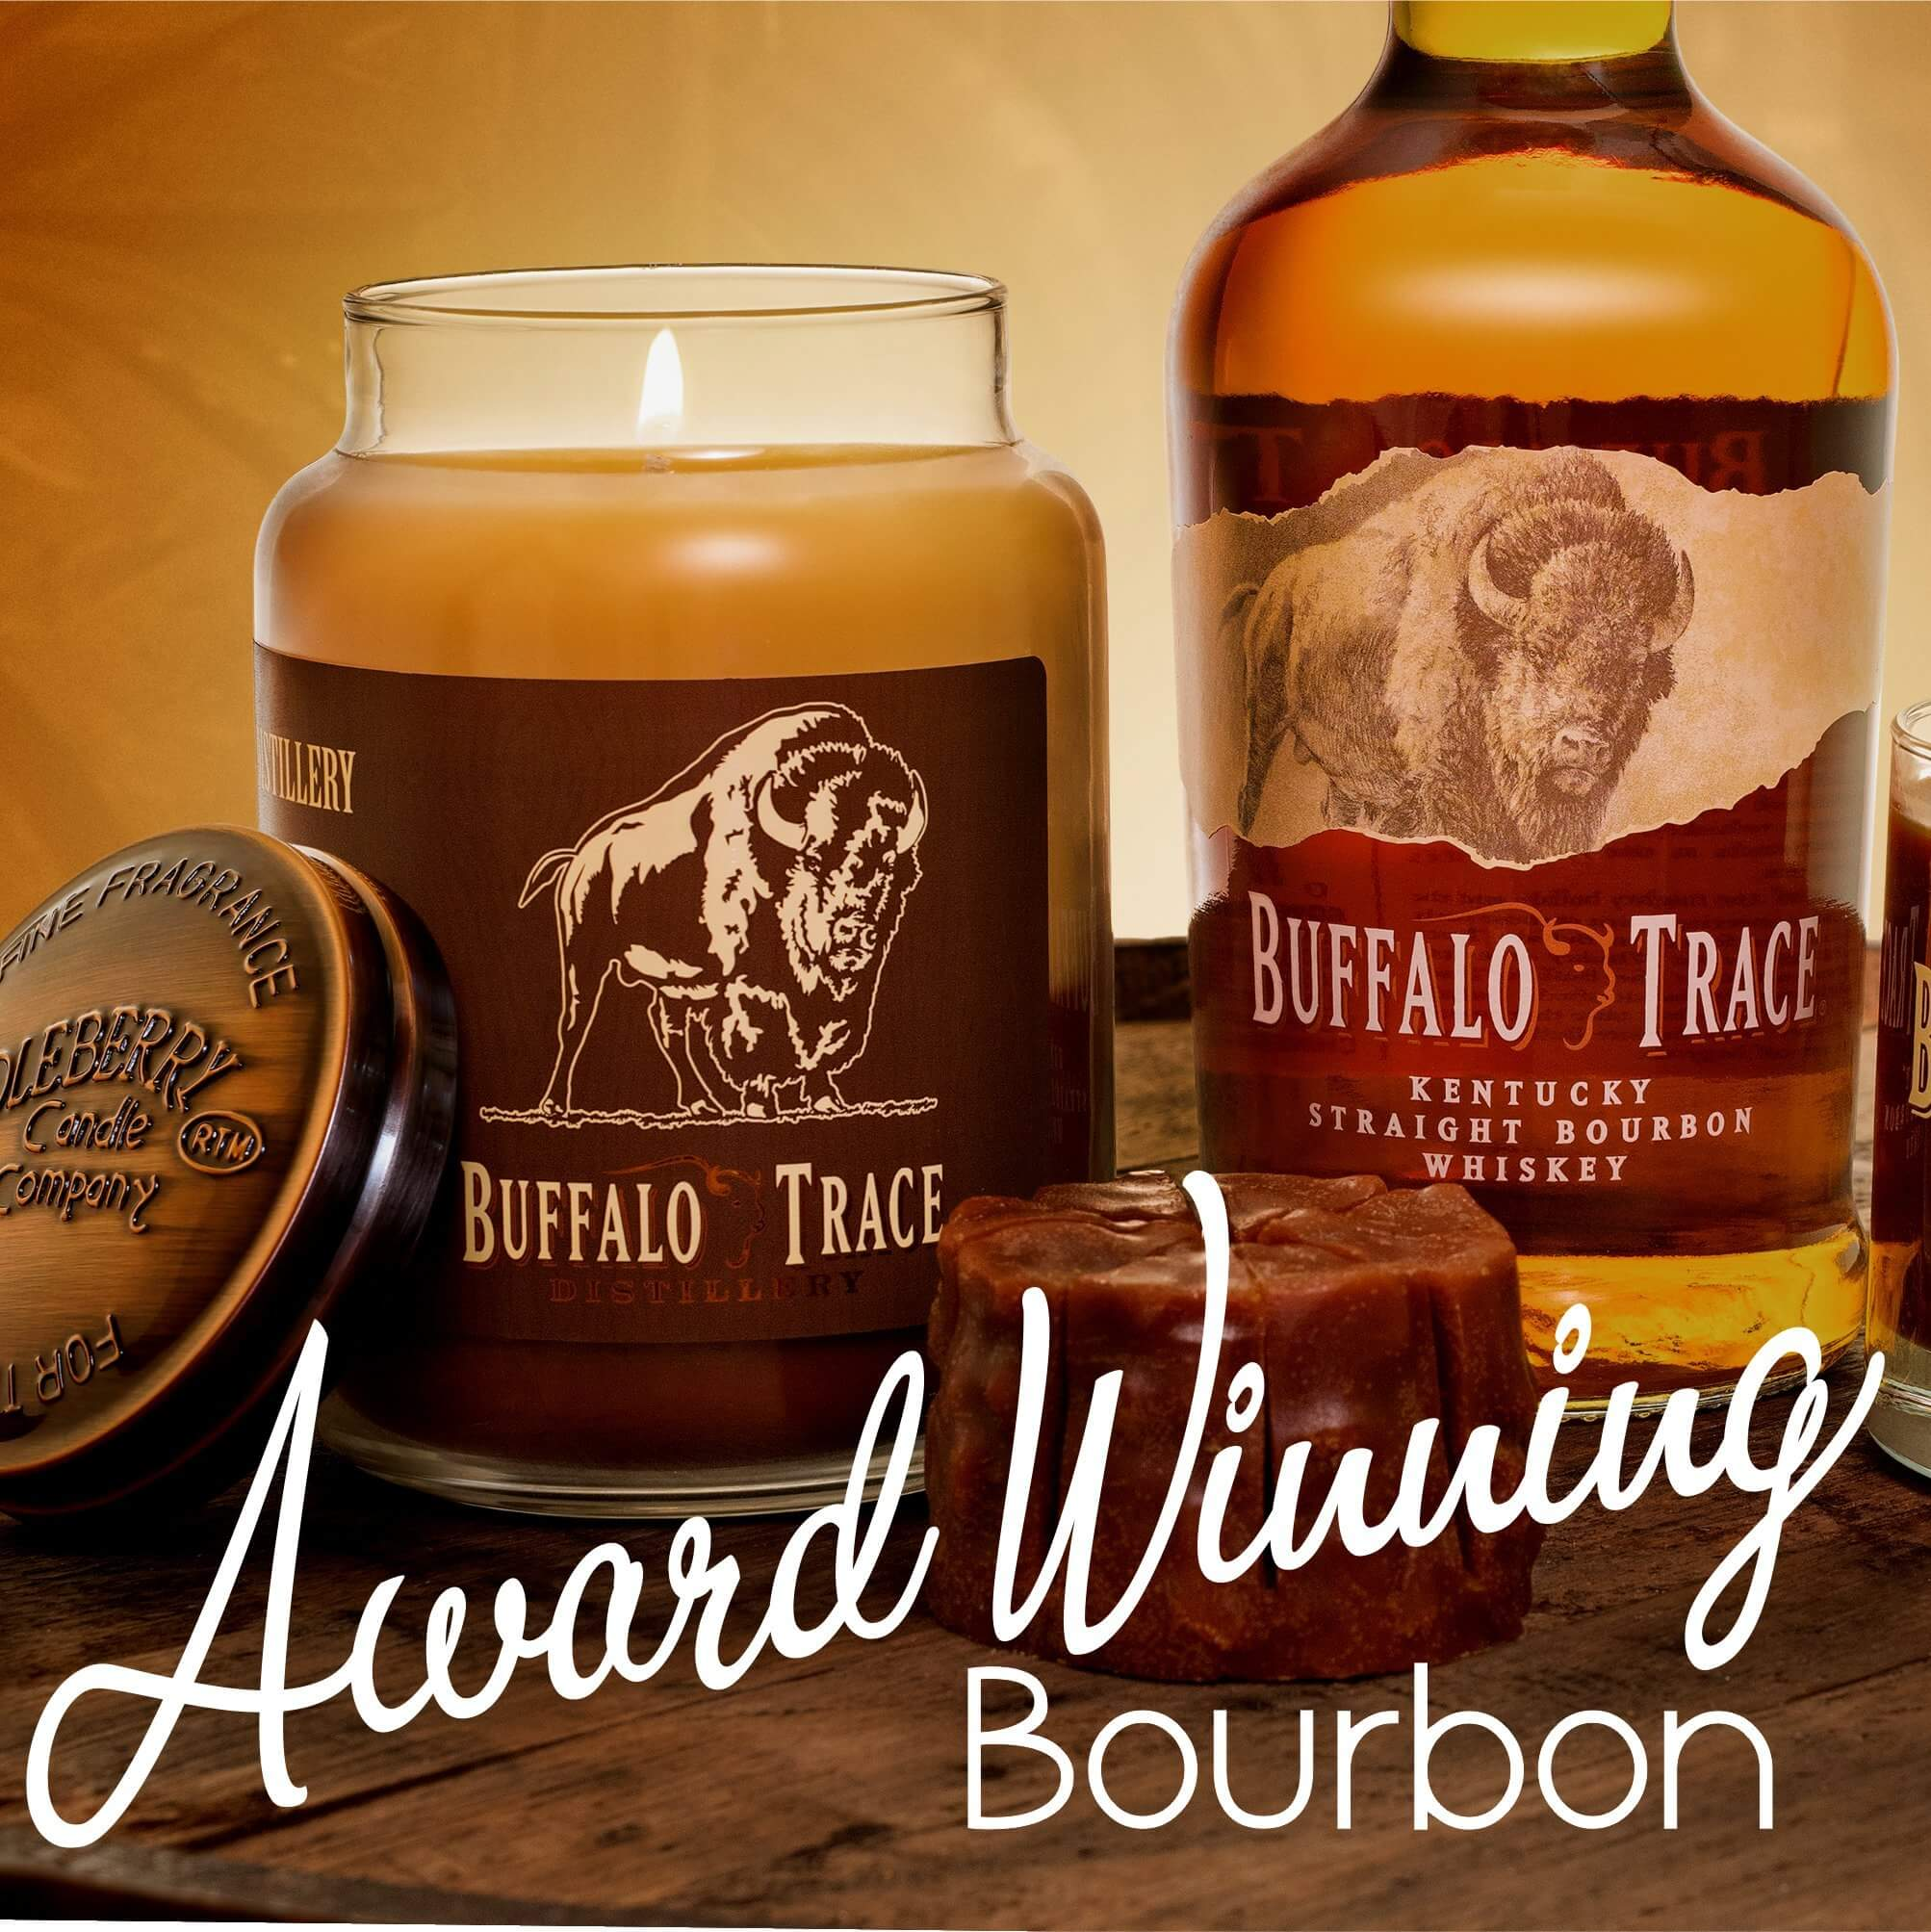 Award Winning Kentucky Bourbon Buffalo Trace Scented Candles